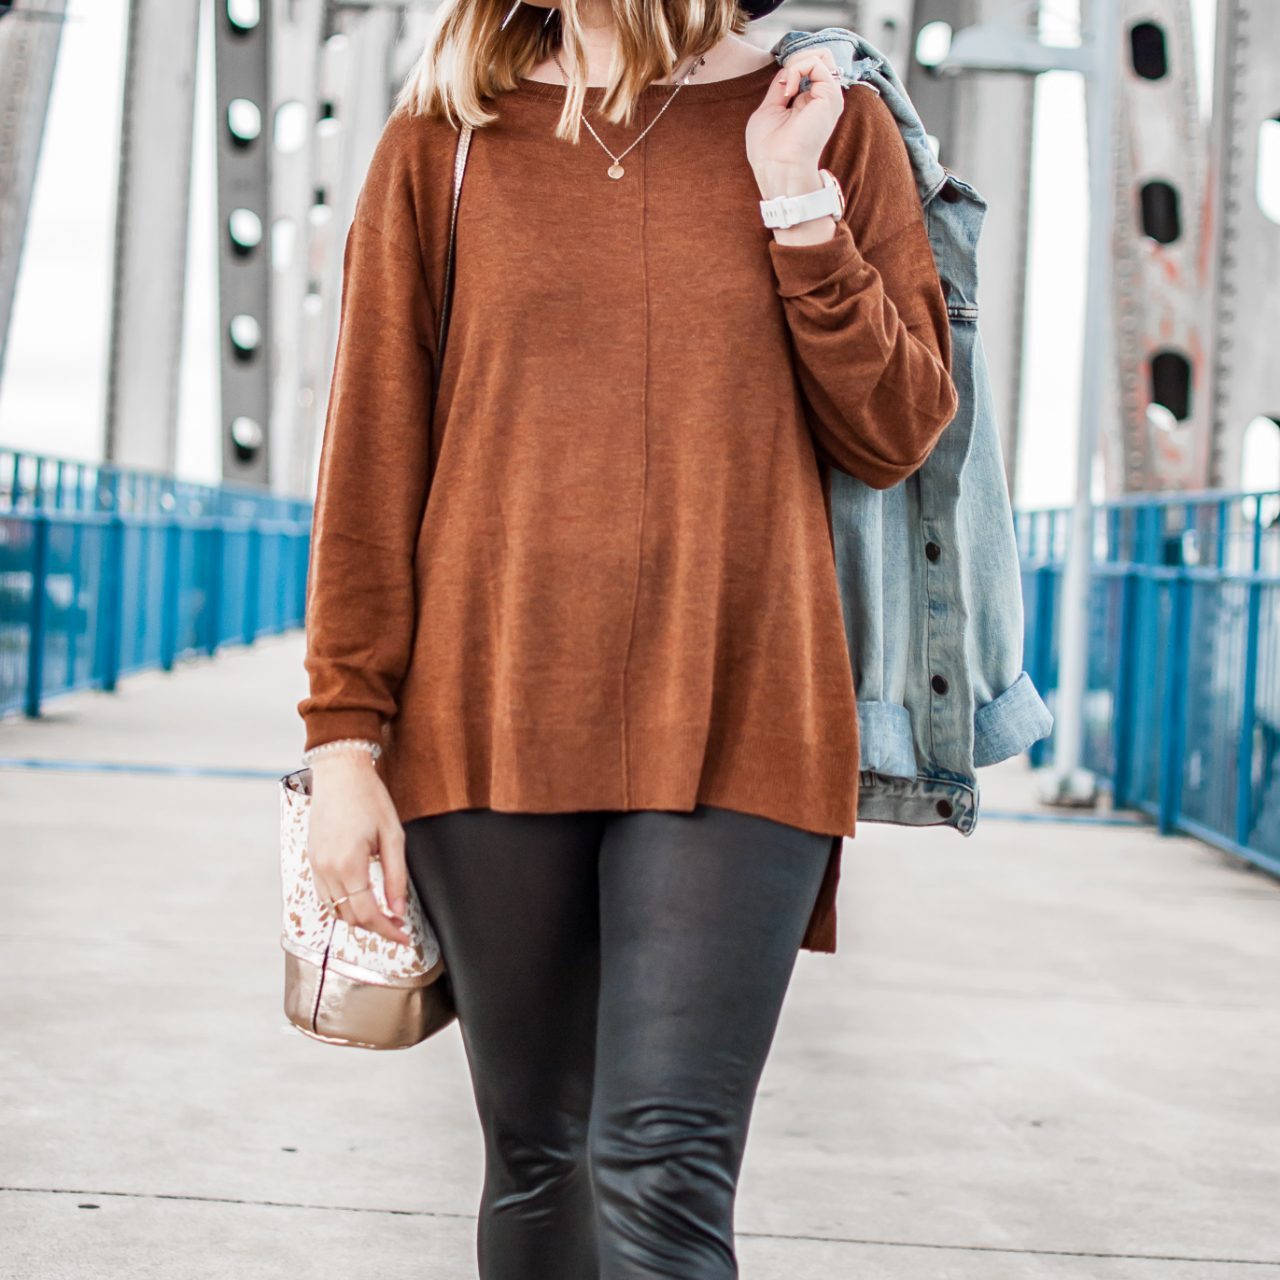 Fall Favorites: H&M Sweater Roundup